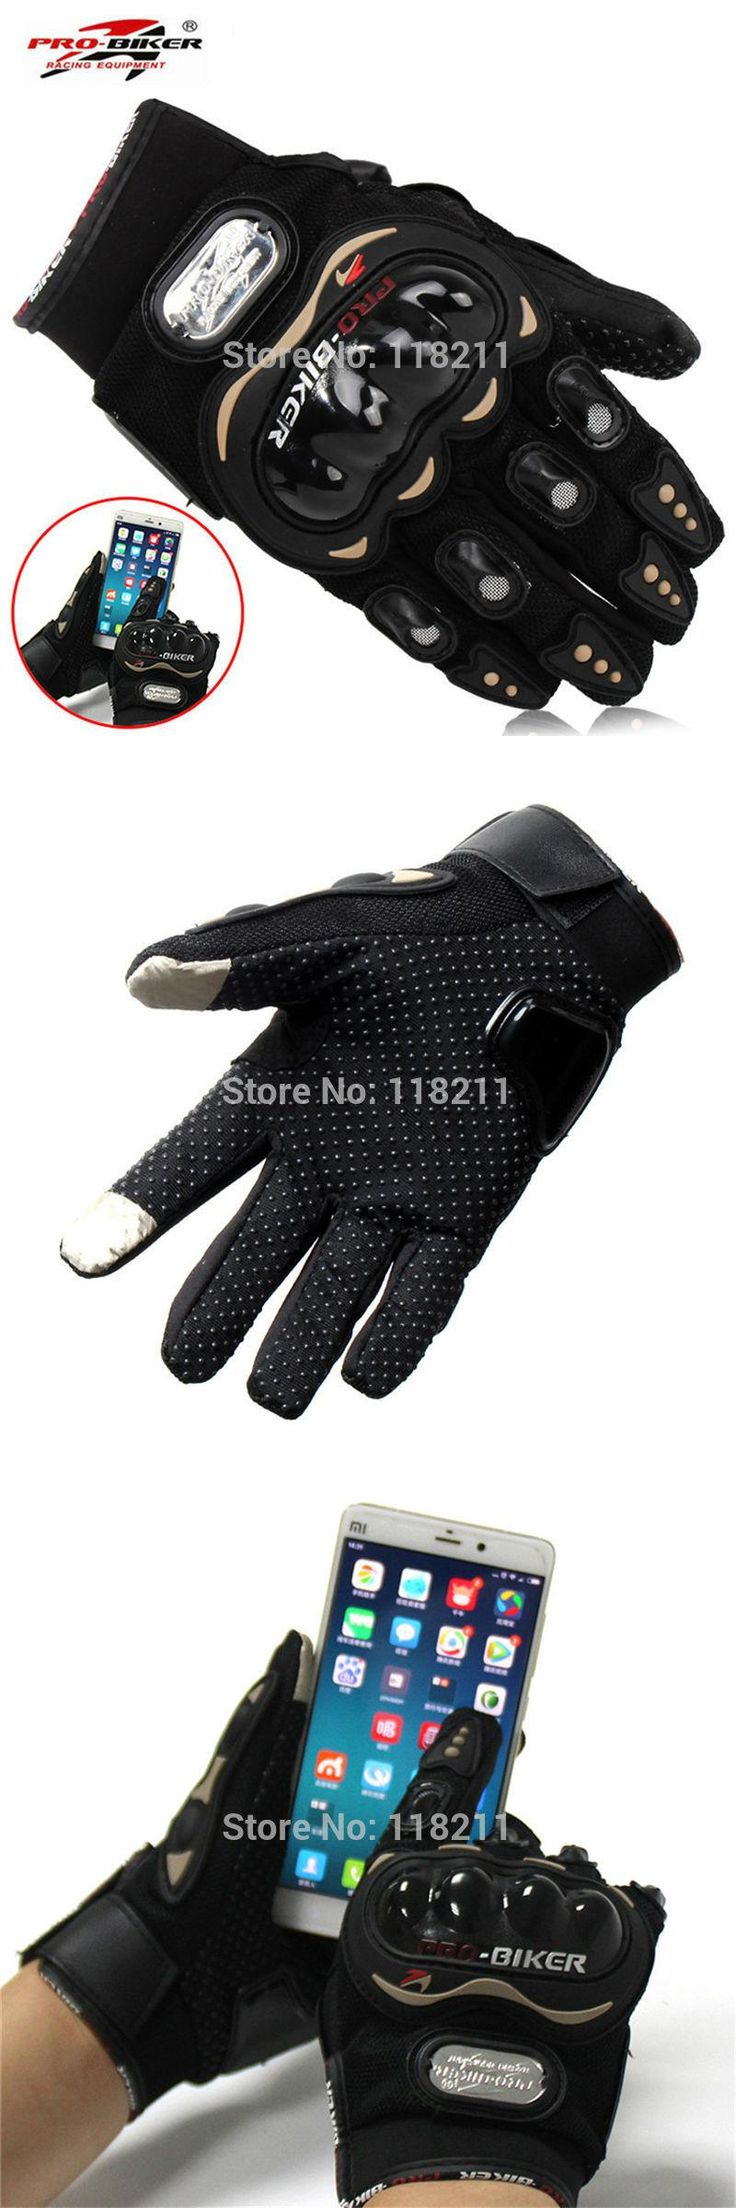 Motorcycle gloves smell -  Visit To Buy New 2016 Screen Touch Motorcycle Gloves Motorbike Moto Luvas Motociclismo Para